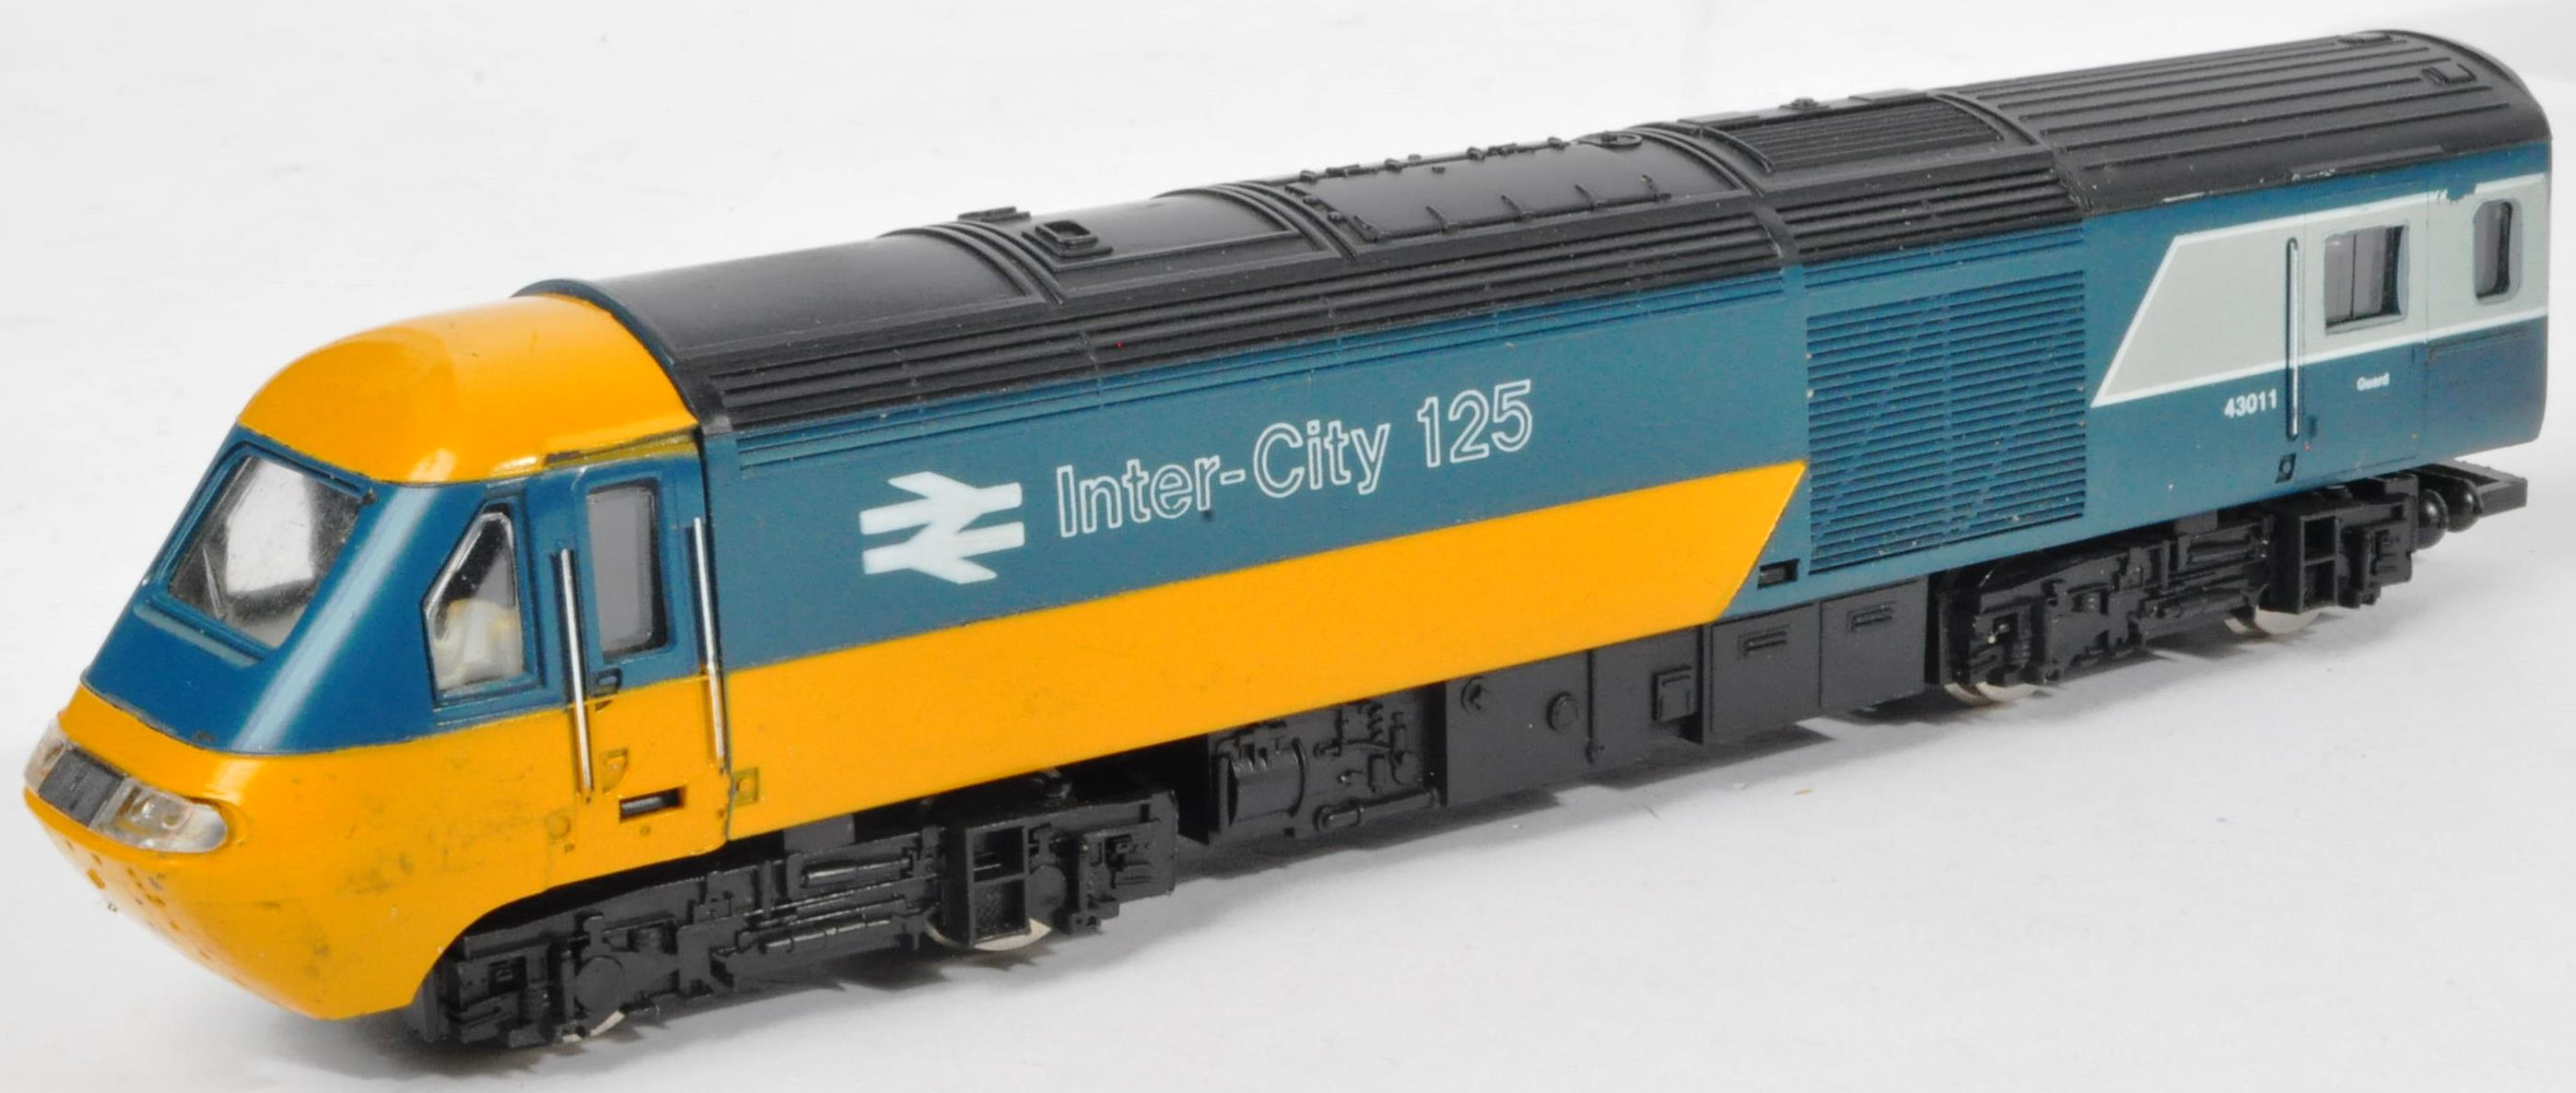 COLLECTION OF ASSORTED DIESEL 00 GAUGE TRAINSET LOCOMOTIVES & CARRIAGES - Image 3 of 10